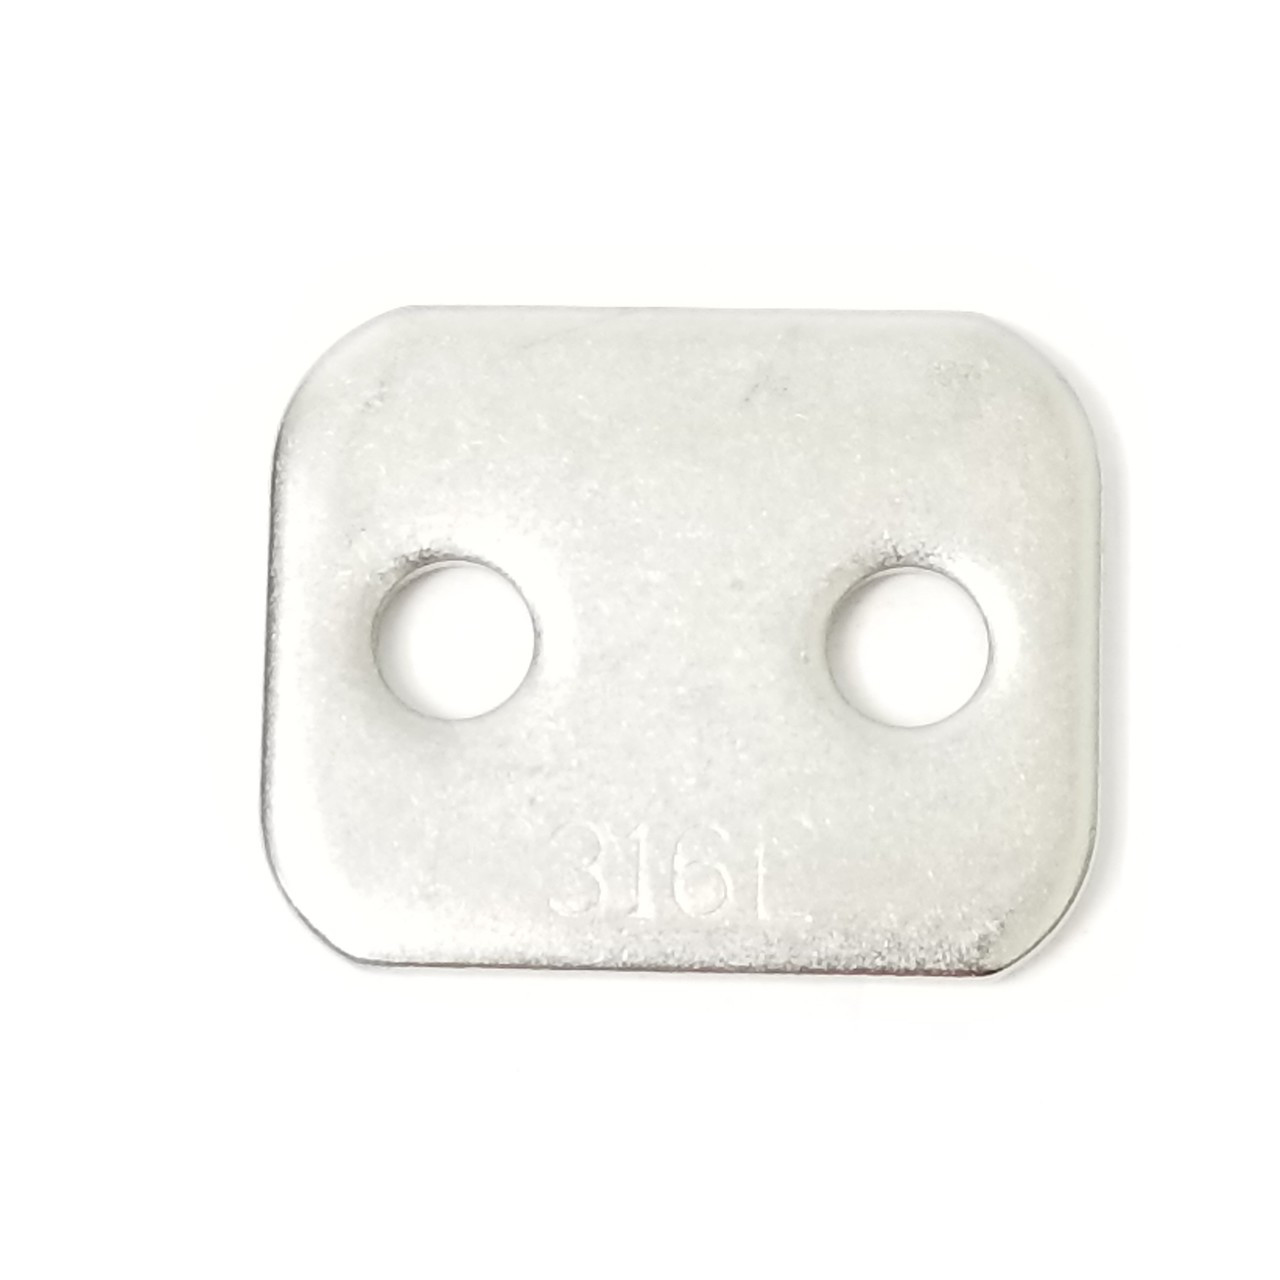 TP1316 Top plate 316 Stainless